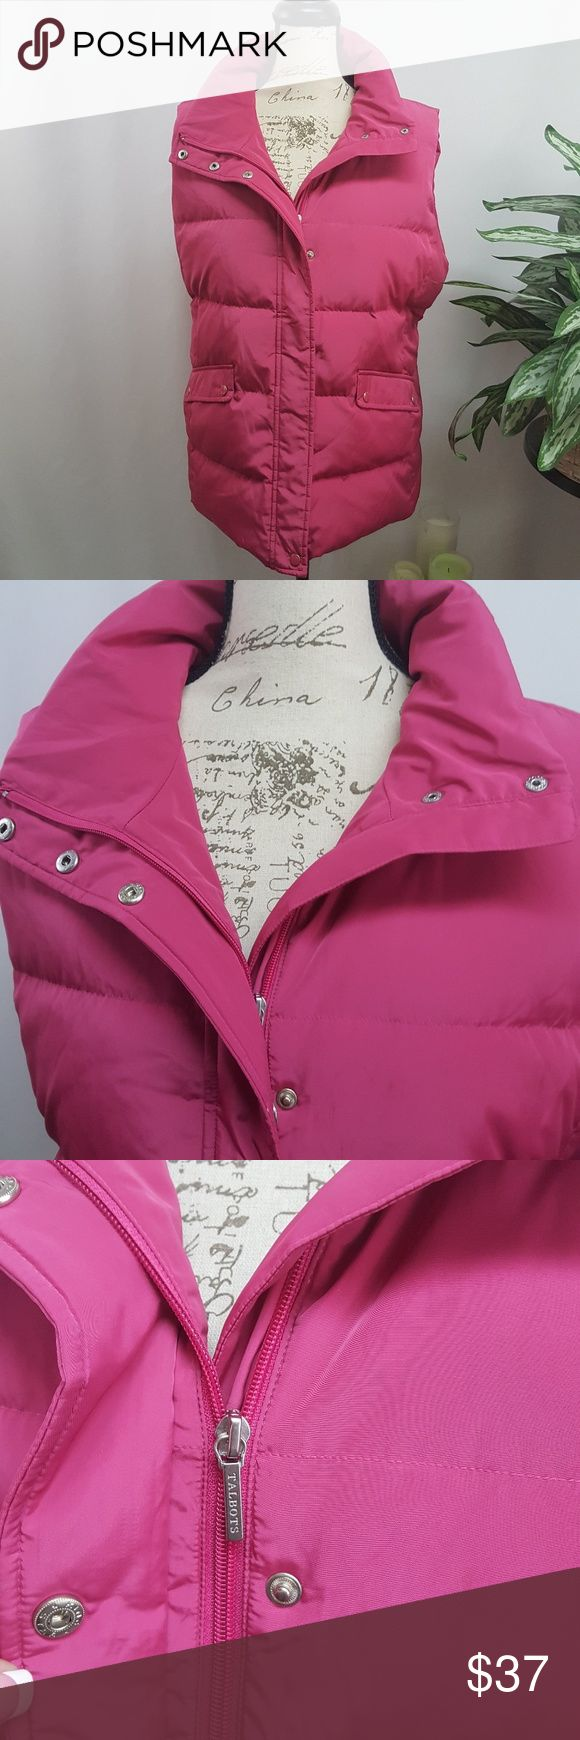 "Talbots Plus Size Puffer Vest X In excellent used condition. One small faint spot on front left shown in last picture. Not noticable until you are looking for it.  Pink puffer vest from Talbot's. Zip and snap closure, 2 functioning pockets with snap closure. Size X X=12W 41"" bust, 35"" waist, 43"" hip per Talbot's online size chart. Talbots Jackets & Coats Vests"